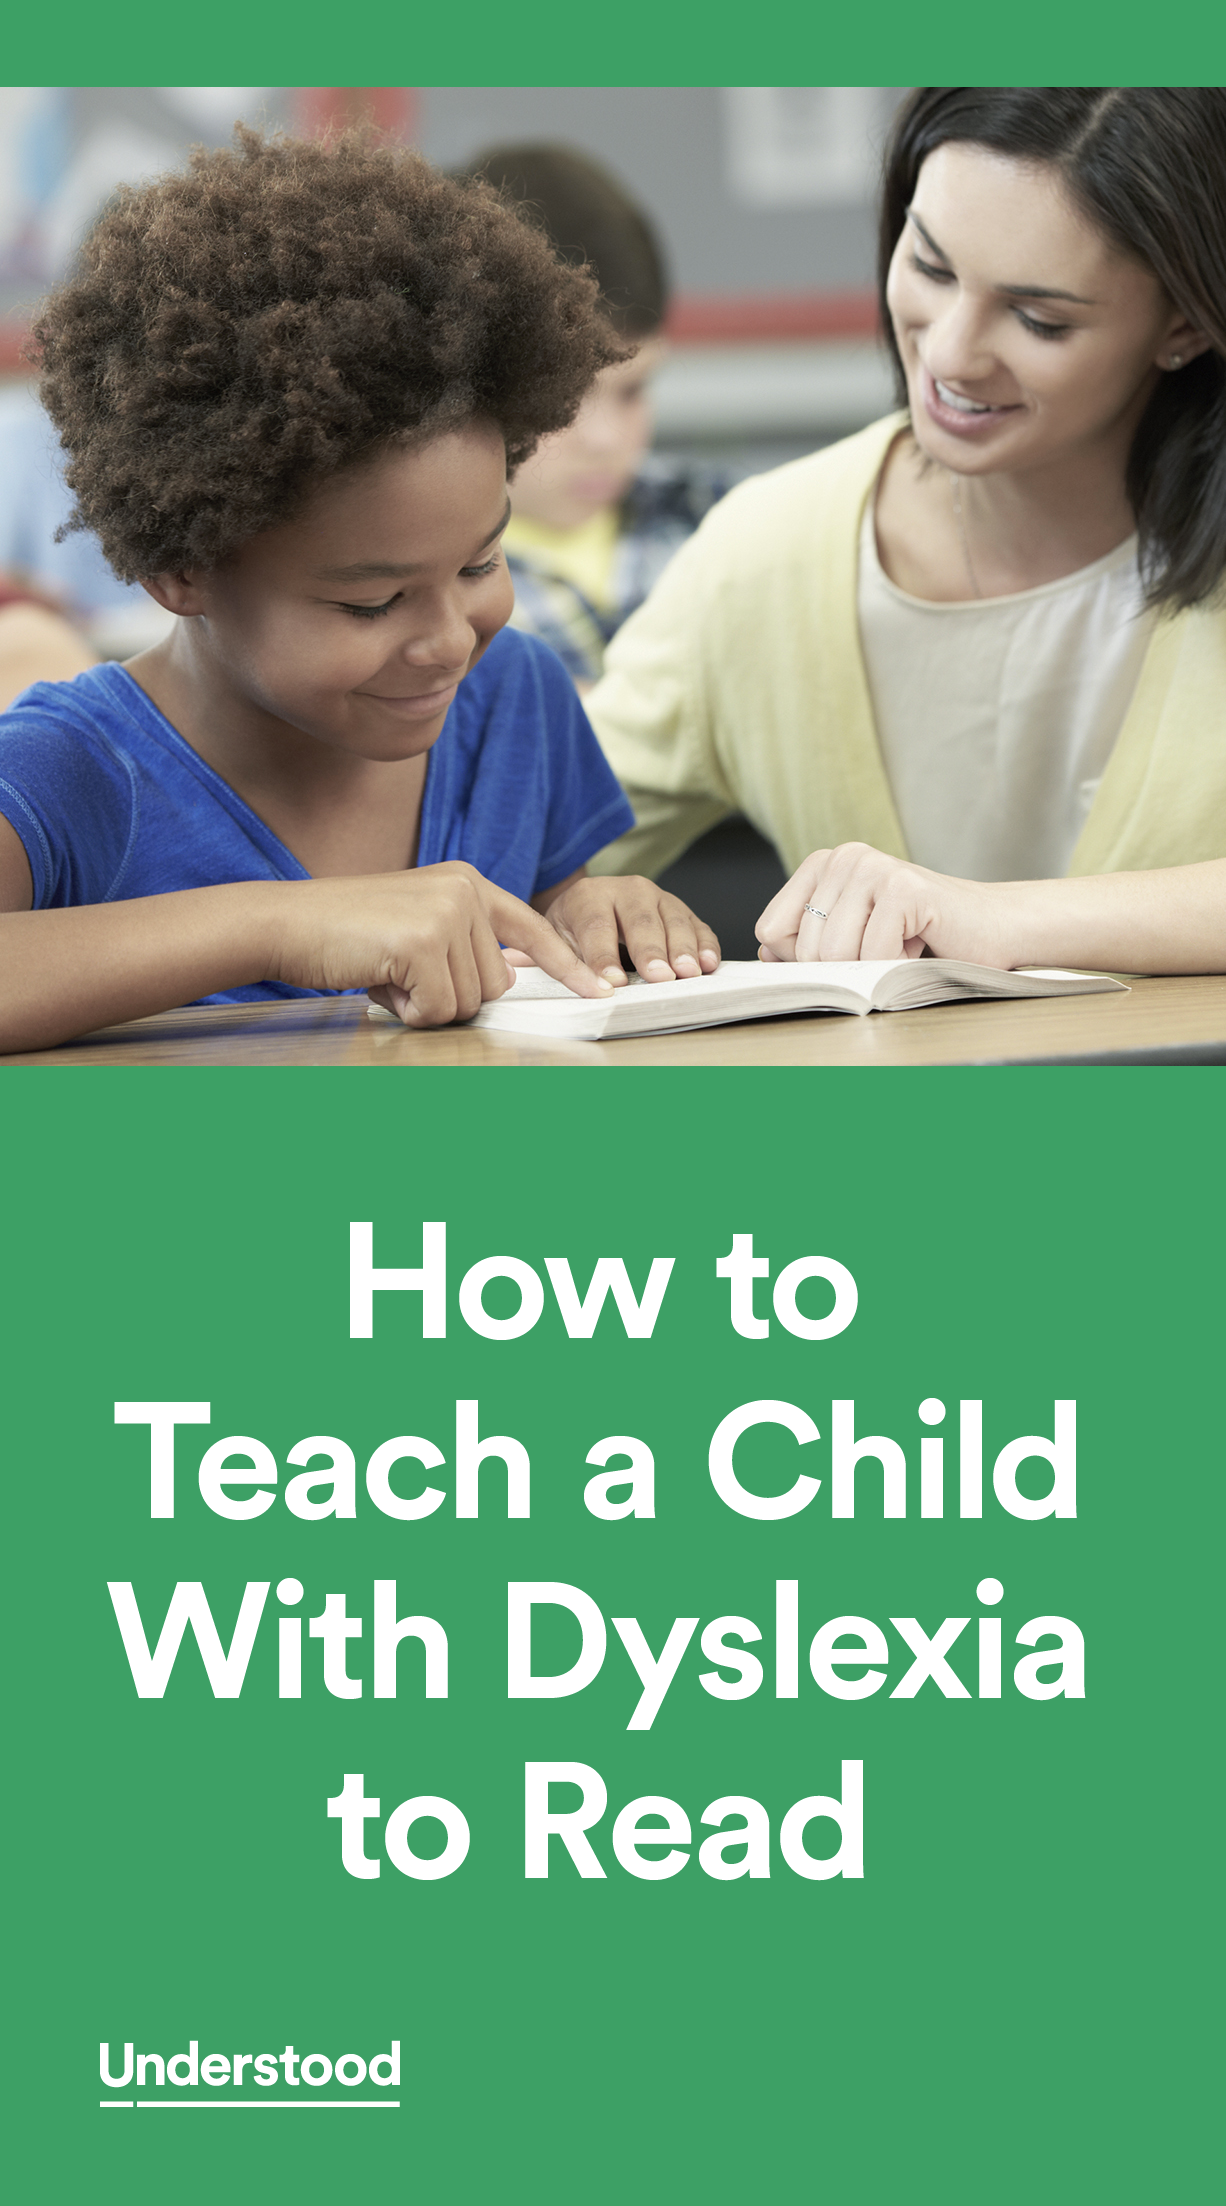 How Do You Teach A Child With Dyslexia To Read